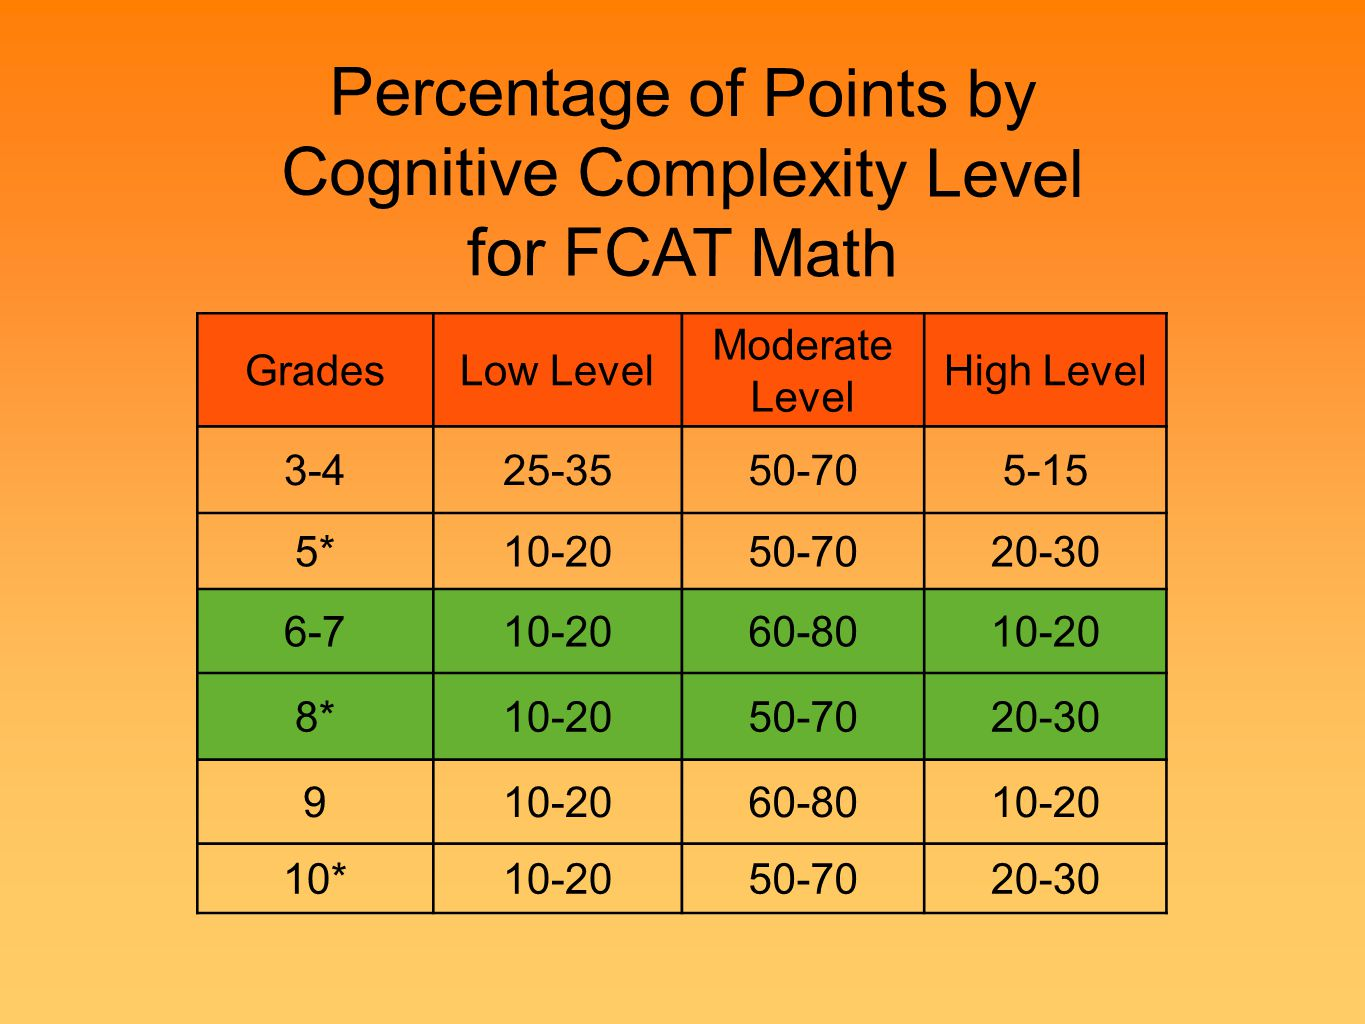 Percentage of Points by Cognitive Complexity Level for FCAT Math